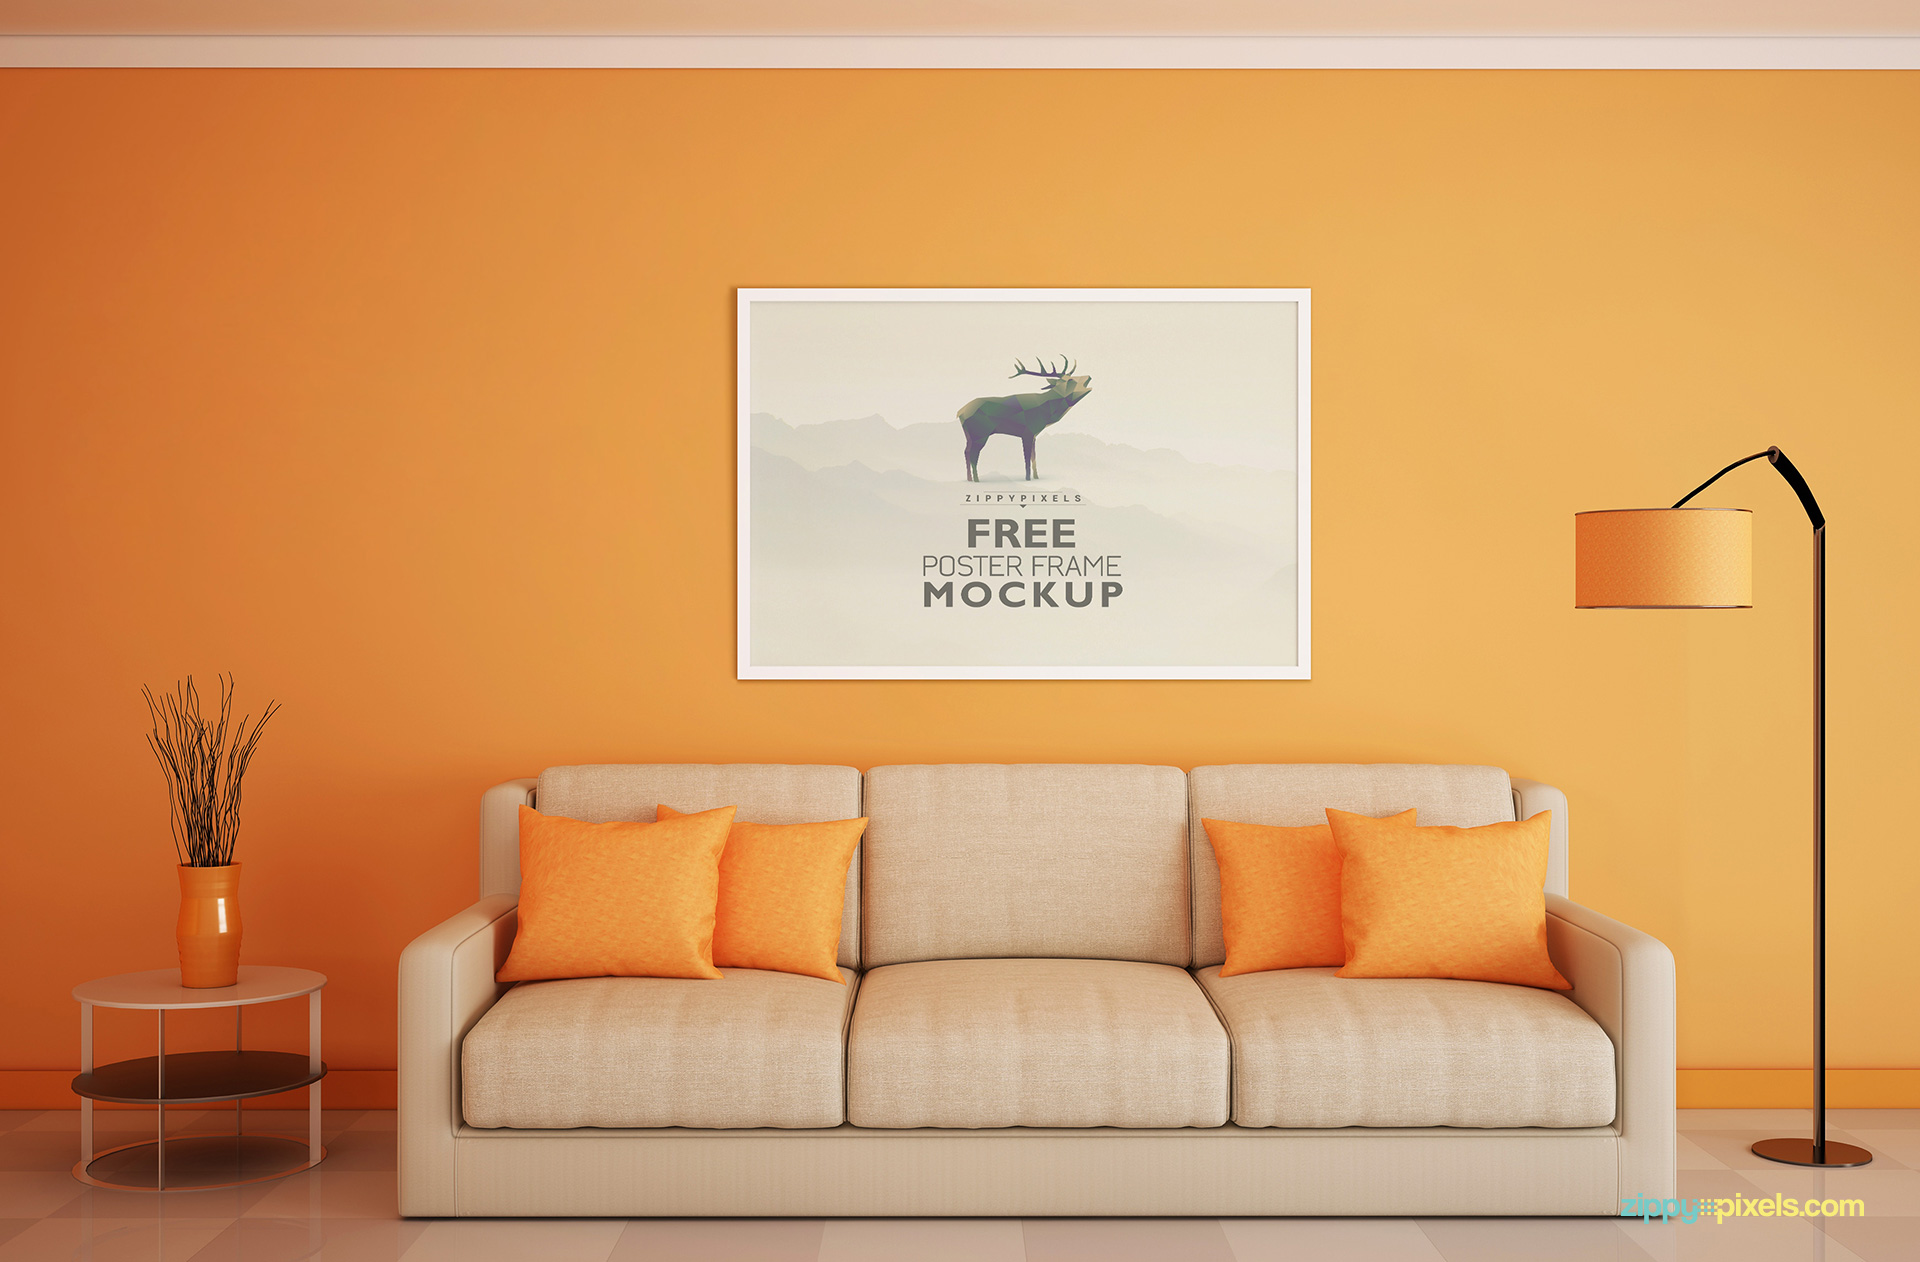 Download free frame mockup for poster display zippypixels for Design a room online free with measurements